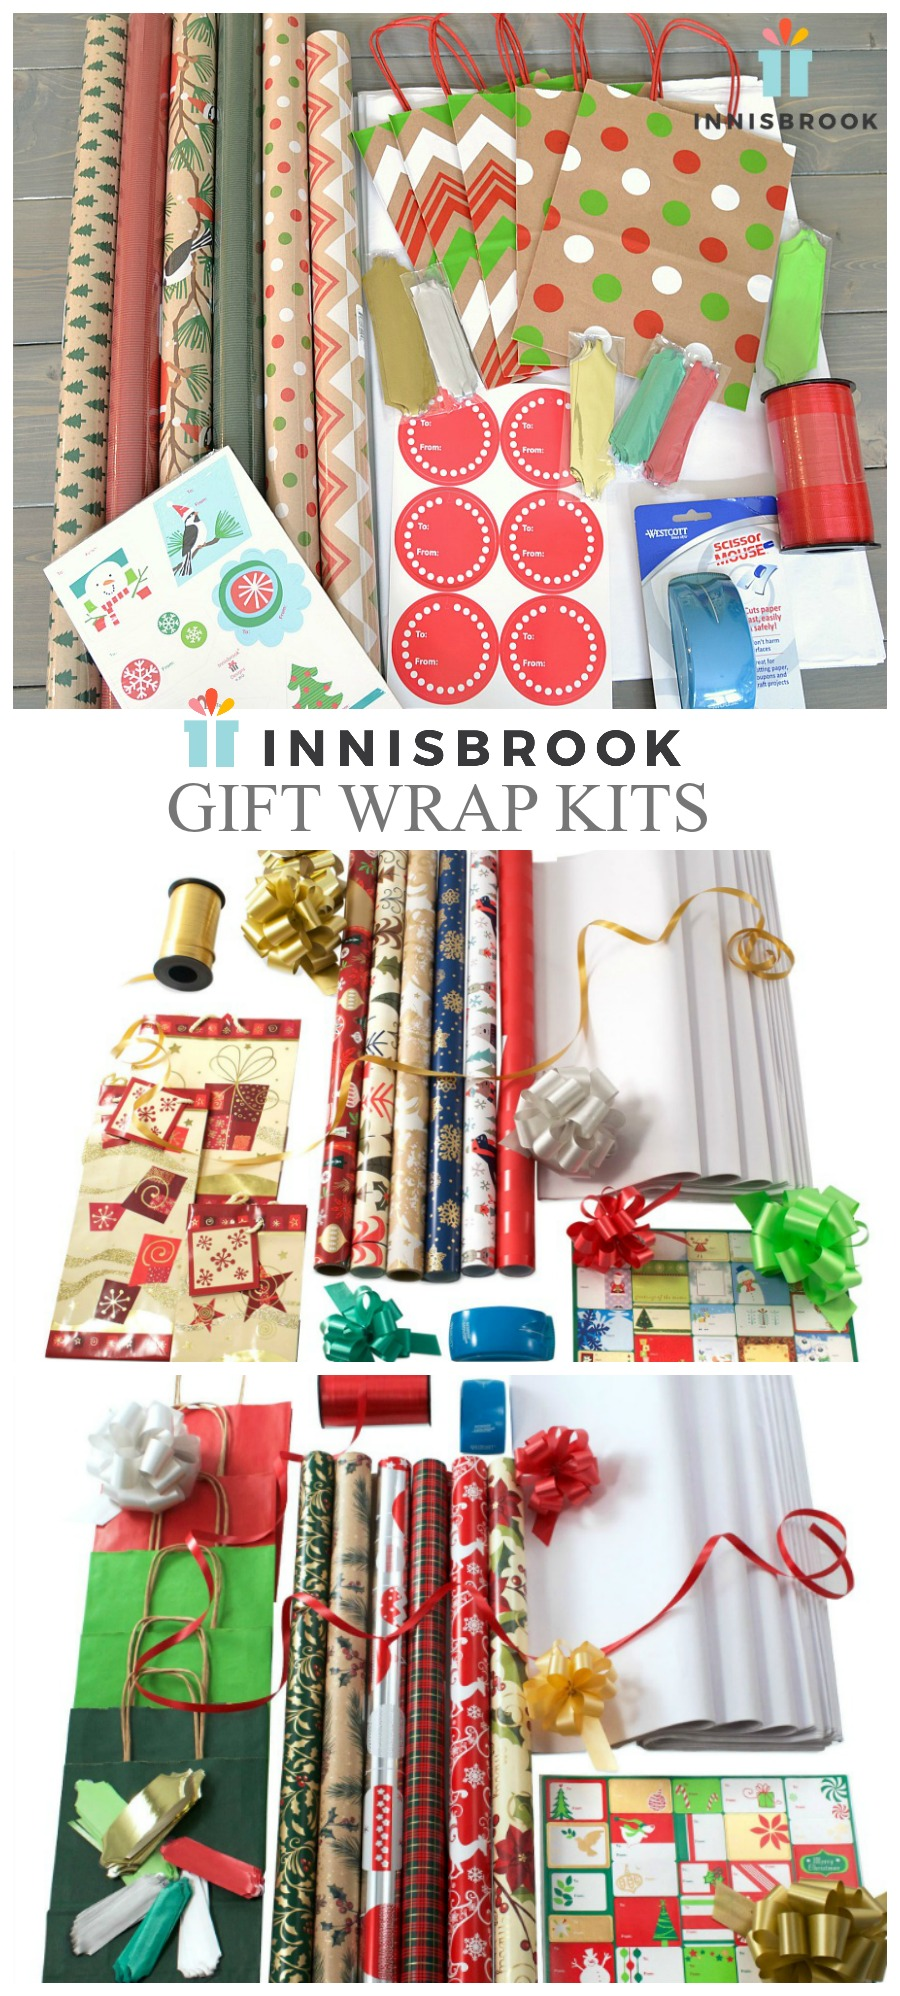 Gift wrap, wrapping paper, Christmas wrap, coordinated gift wrap, Innisbrook